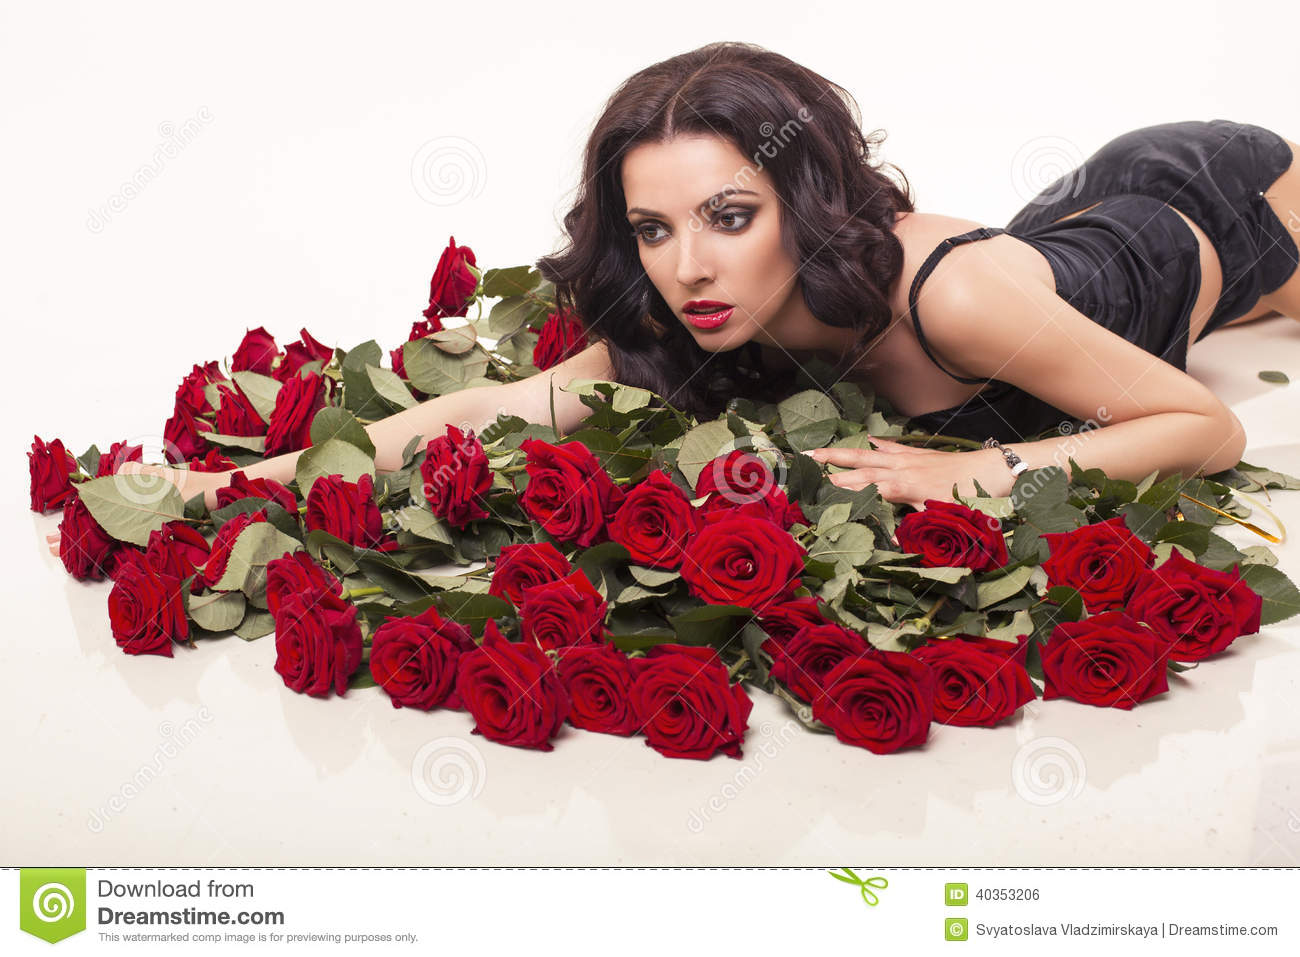 7e471450c1 Beautiful woman with black hair in elegant lace dress posing with bouquet  of red roses